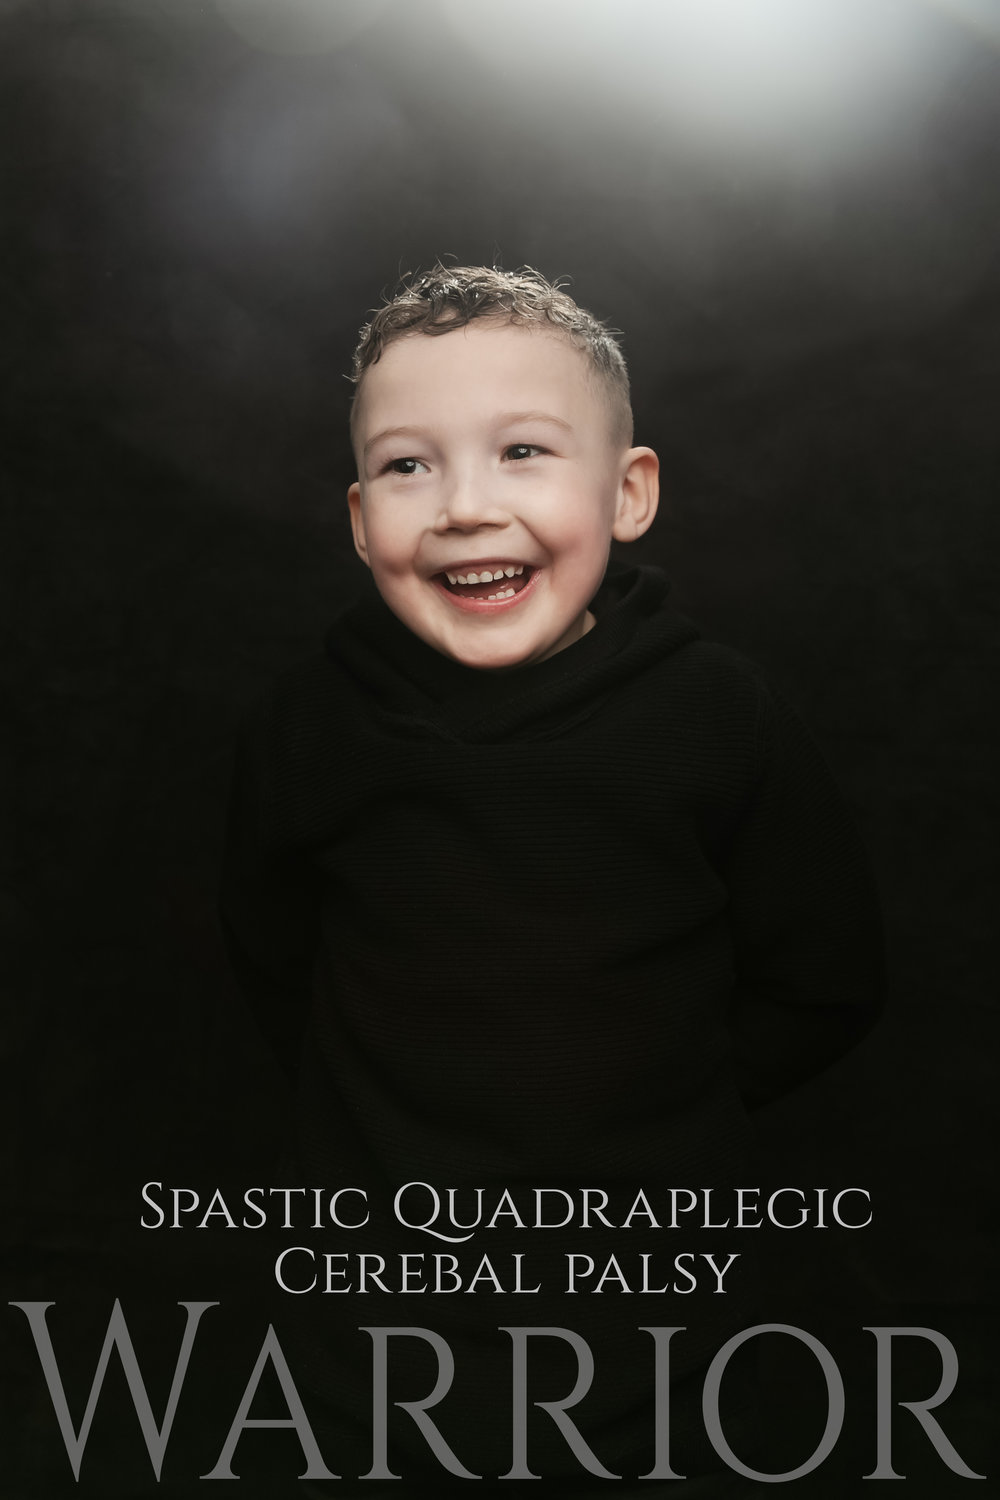 AJ spastic quadraplegic cerebal palsy epilepsy autistic child portrait session clickclickbang photography studio portraits colne burnley lancashire